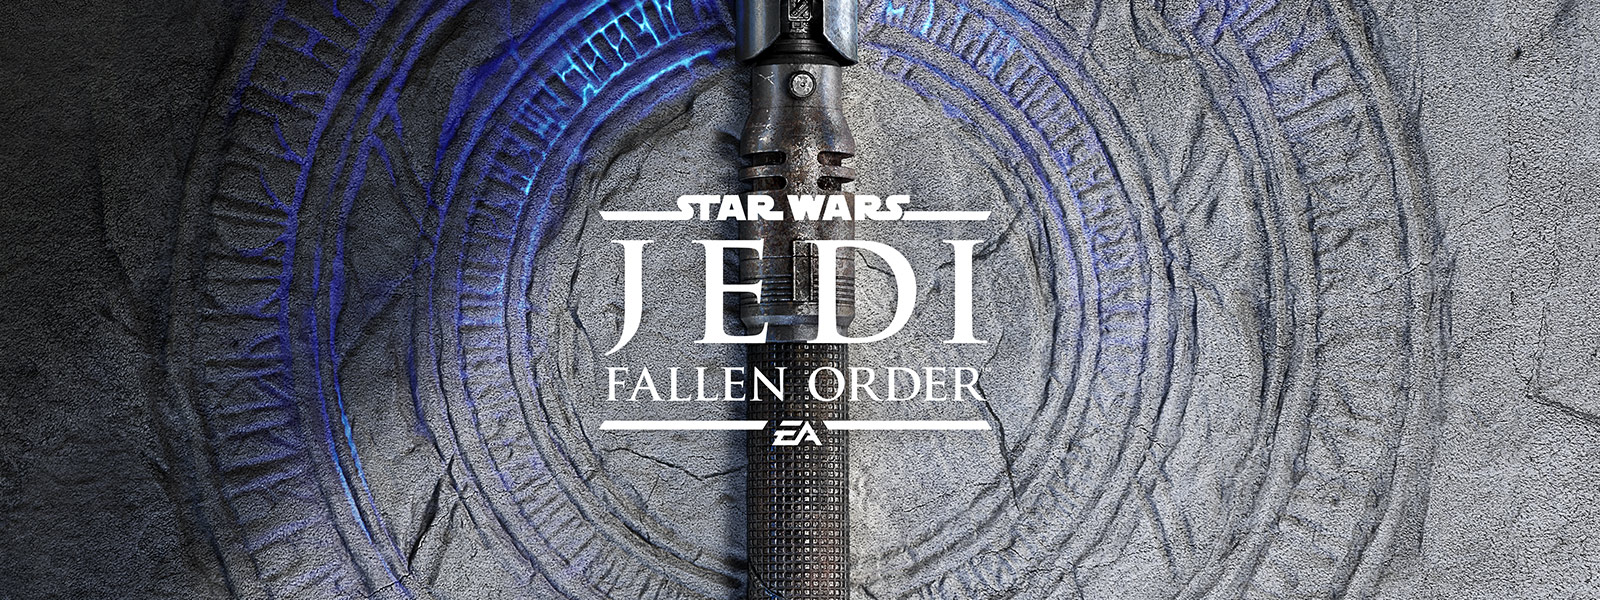 Star Wars Jedi Fallen Order logo, Glowing blue cracks in the ground with a lightsaber on top